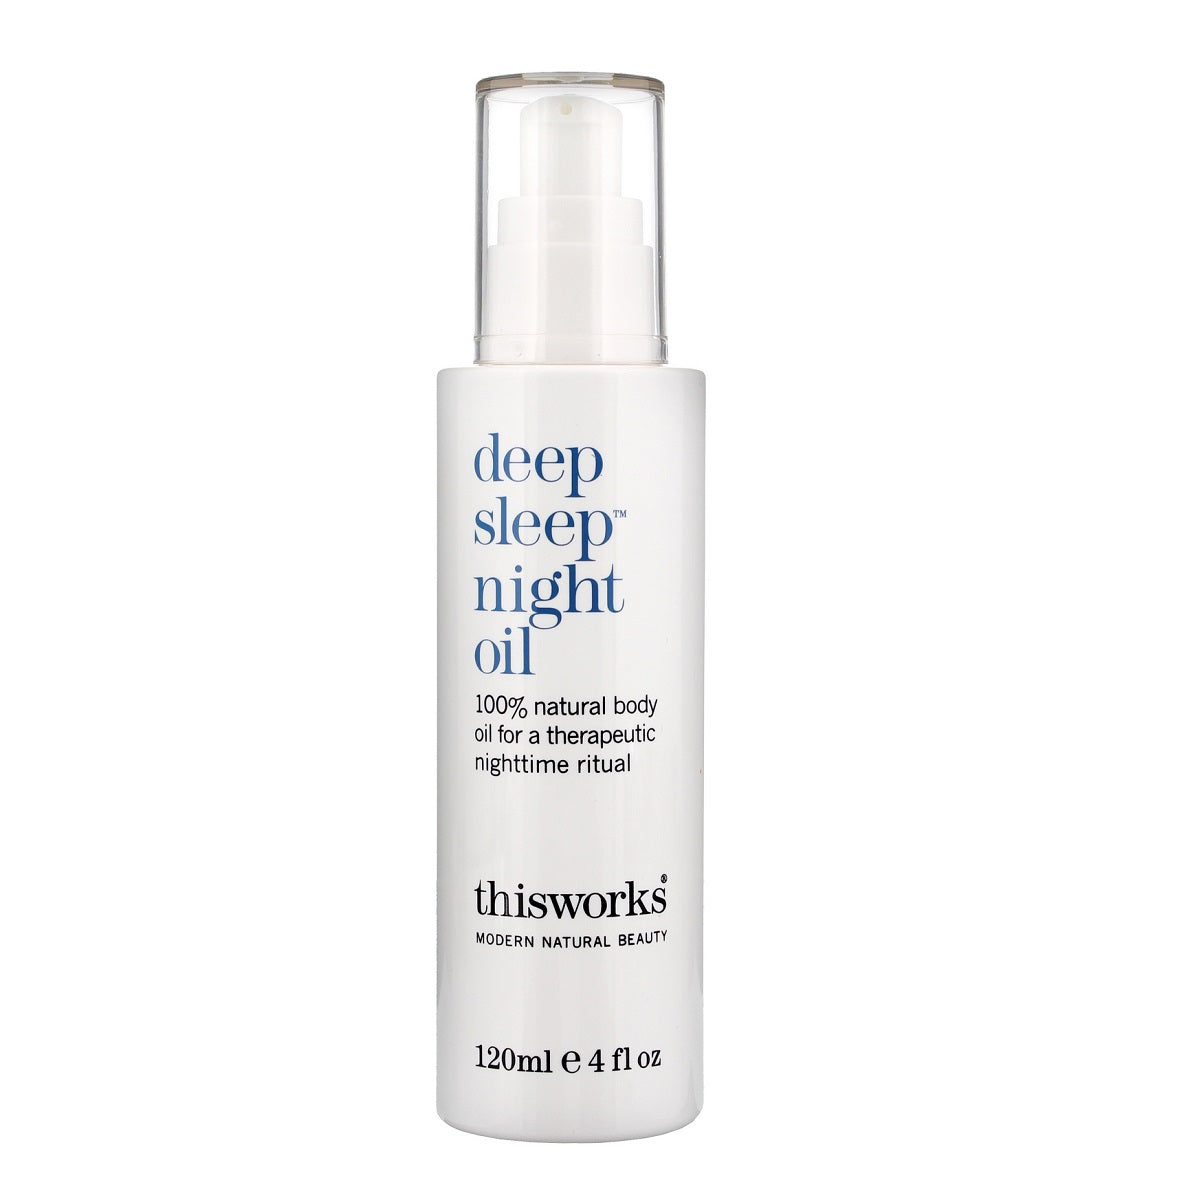 thisworks Deep Sleep Night Oil